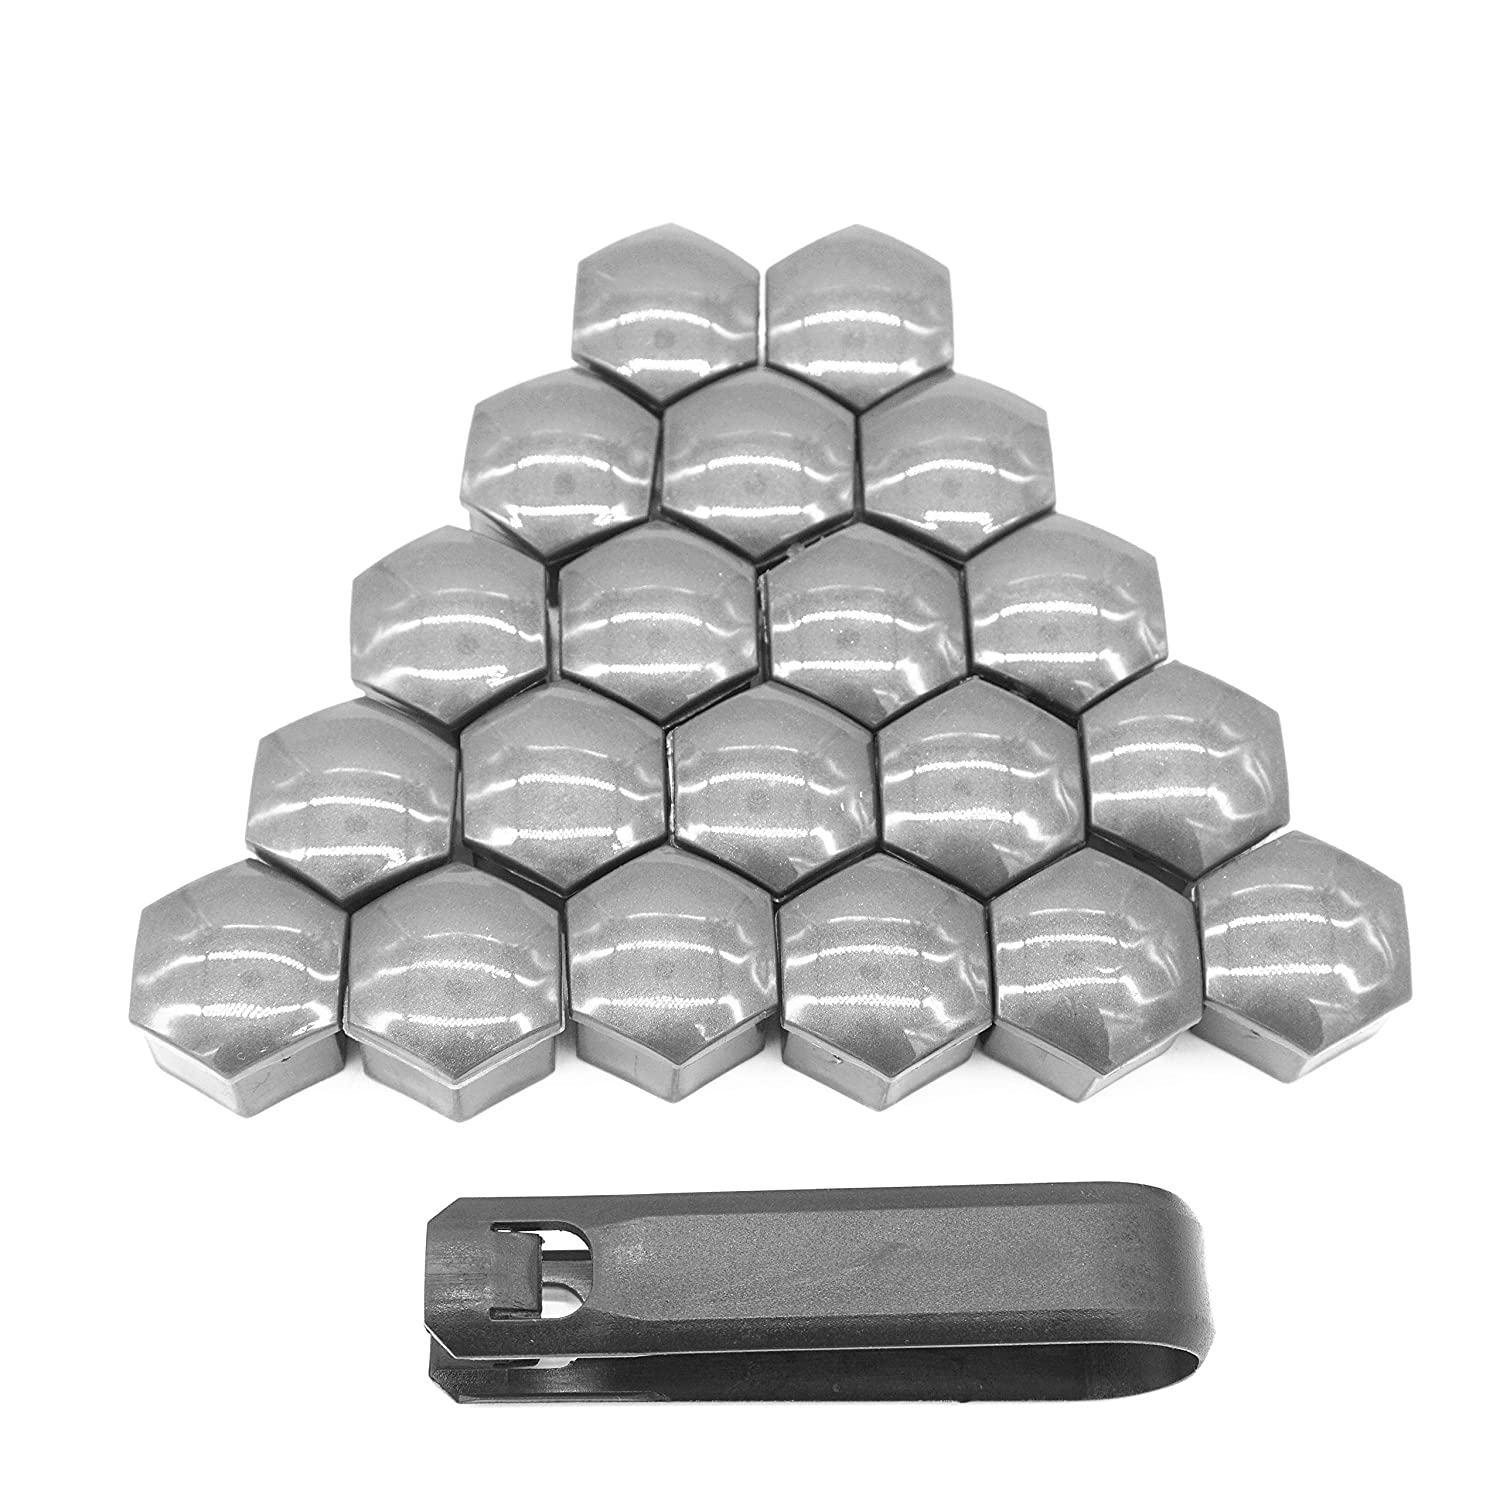 New Universal 17mm Wheel Lug//Hub Nuts Bolts Caps -Plastic Grey Wheel Lug Bolts Caps Included Removal Tool//Extraction Puller Tool Wheel Lug Nut Bolt Cover Caps Tire Bolts Head Covers 20 Pack